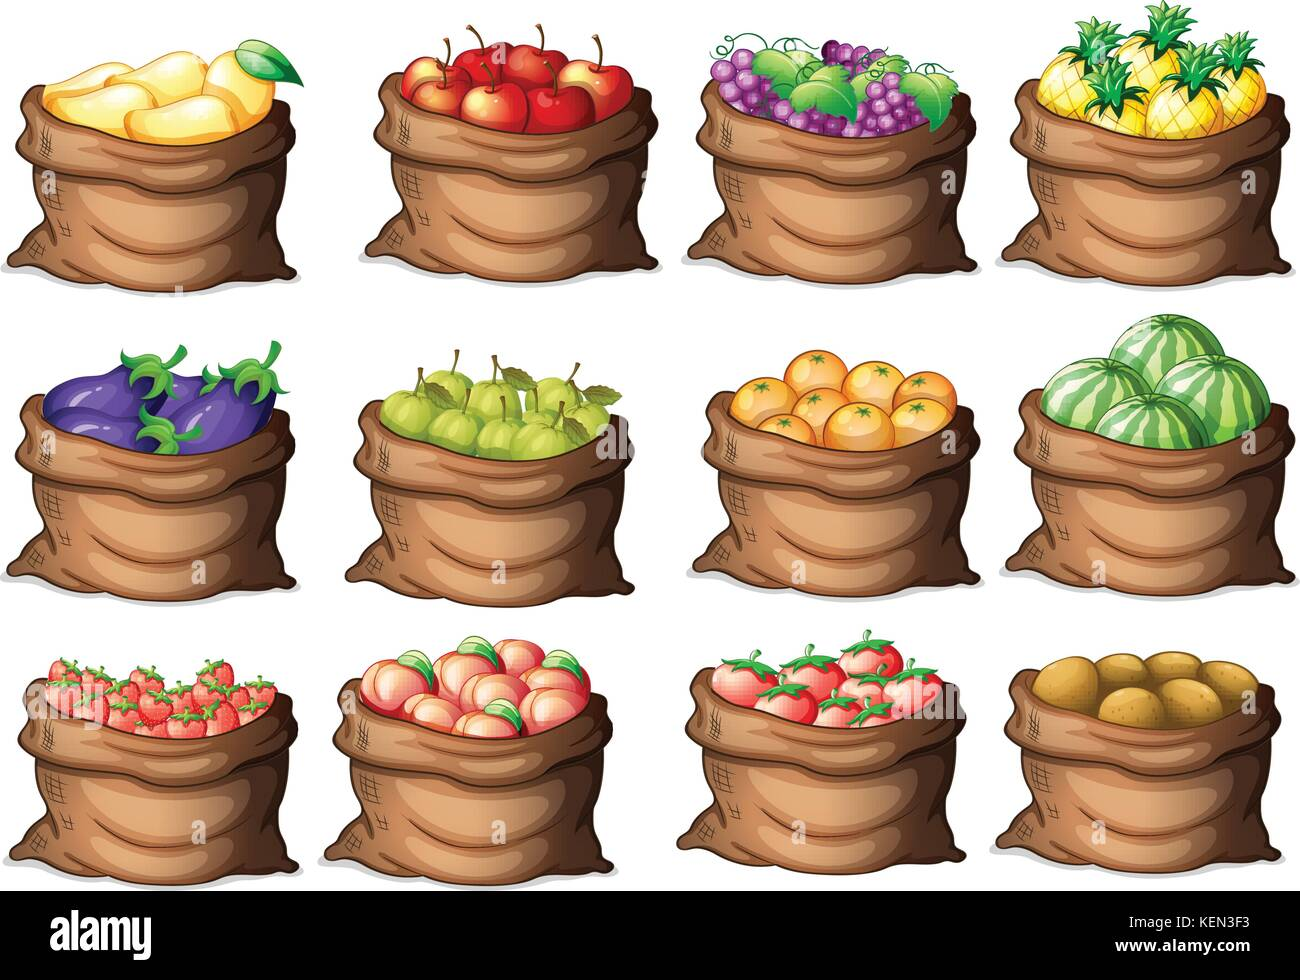 Illustration of the sacks with different fruits on a white background - Stock Vector